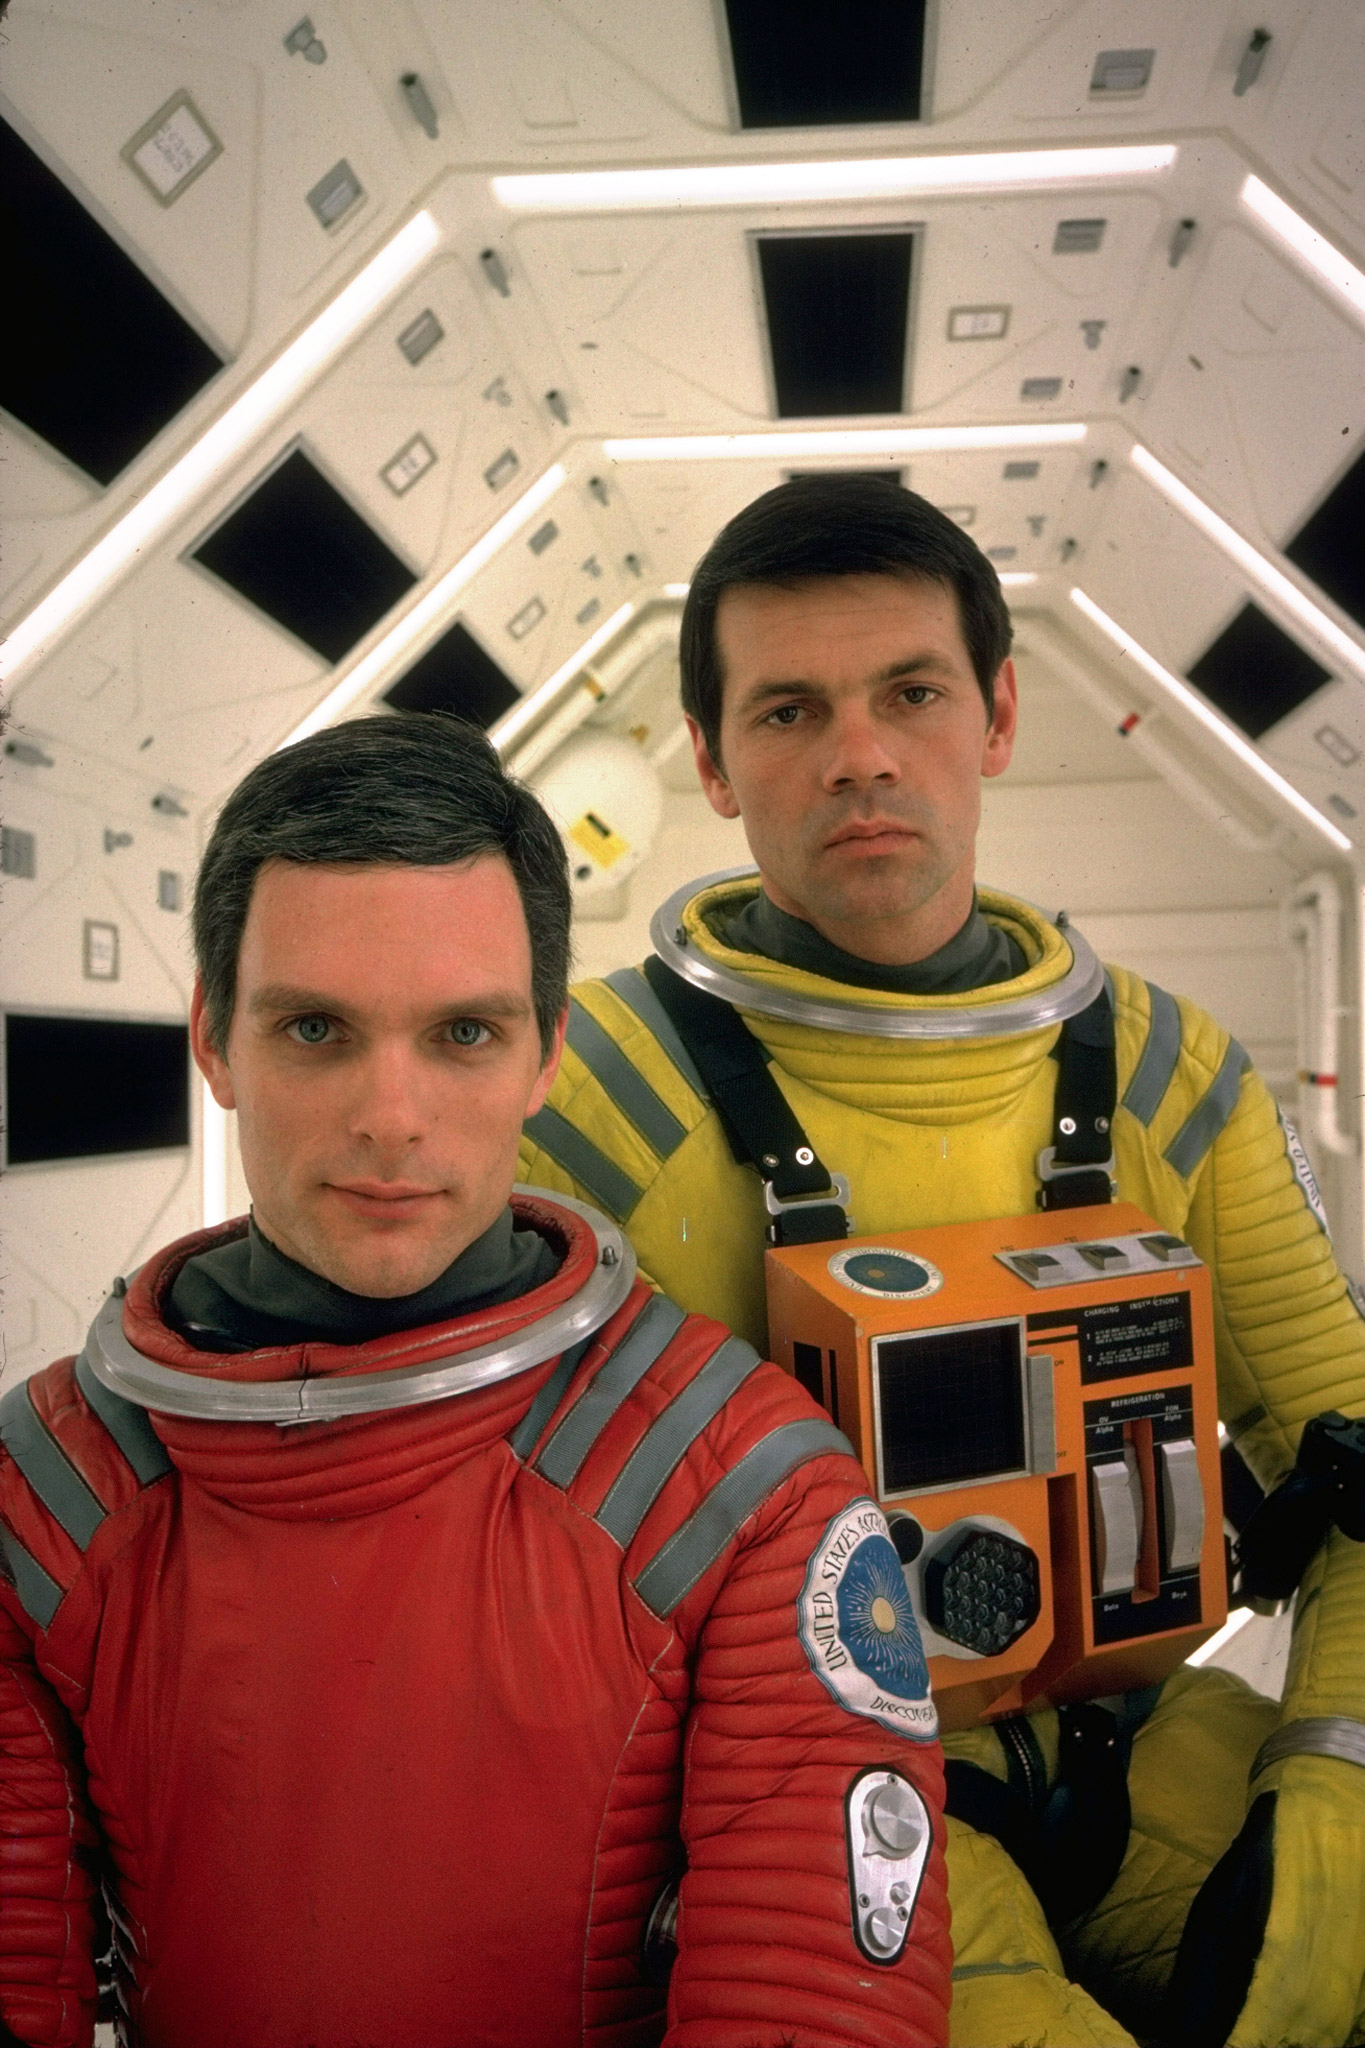 """Suit up in red and yellow for a look from Stanley Kubrick's 1968 film """"2001: A Space Odyssey,"""" channeling Kier Dullea as Dr. Dave Bowman and Gary Lockwood as Dr. Frank Poole."""